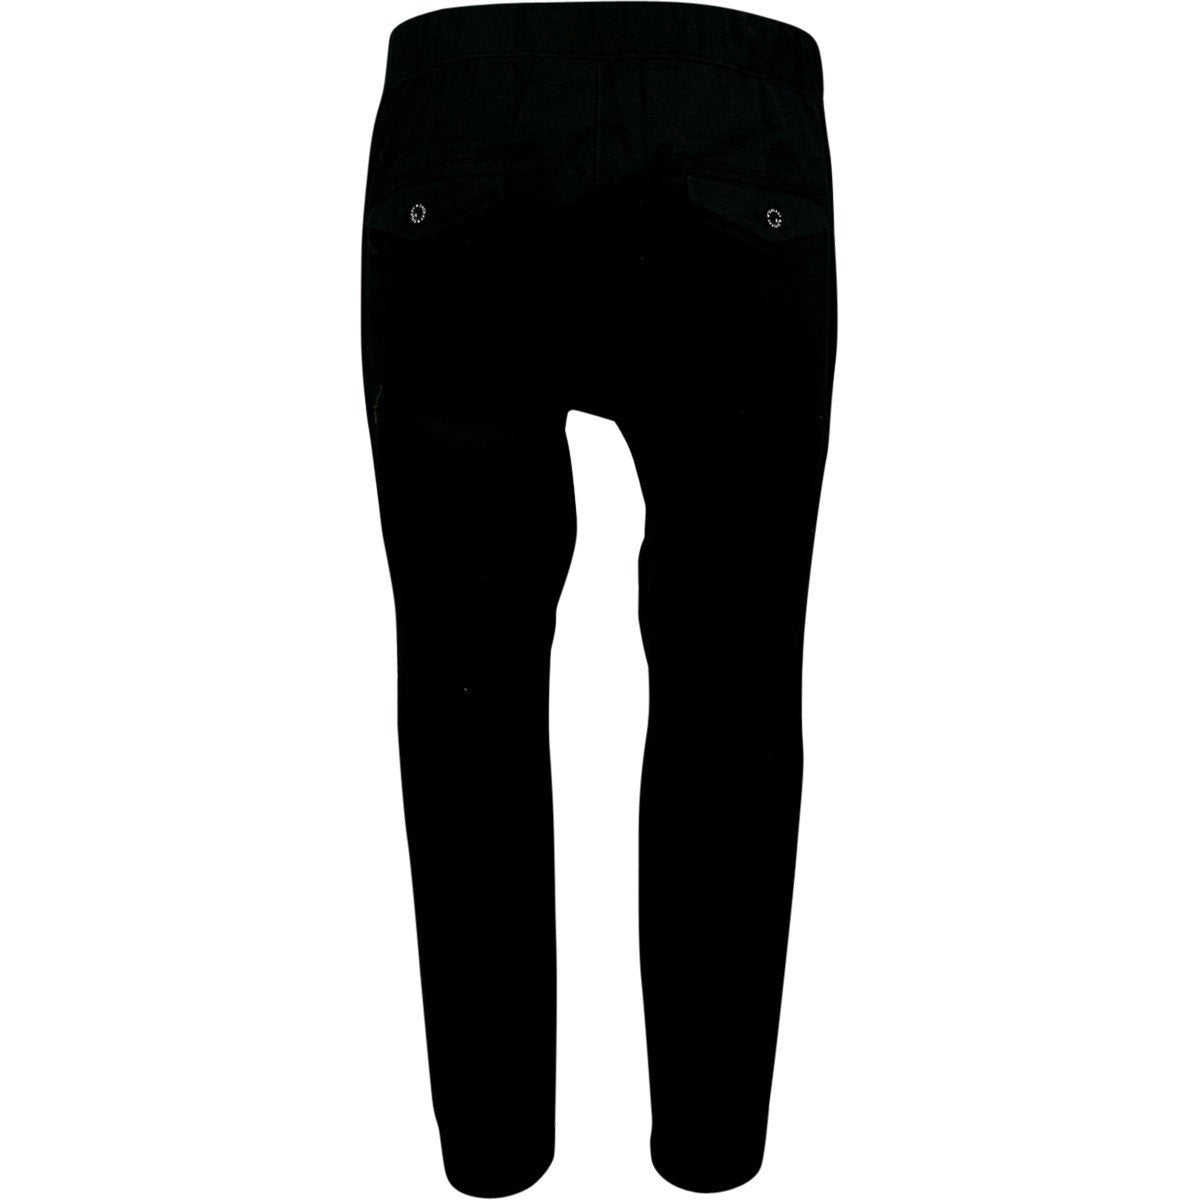 Galaxy By Harvic - Men's Solid Twill Joggers - Black - V.I.M. - 2